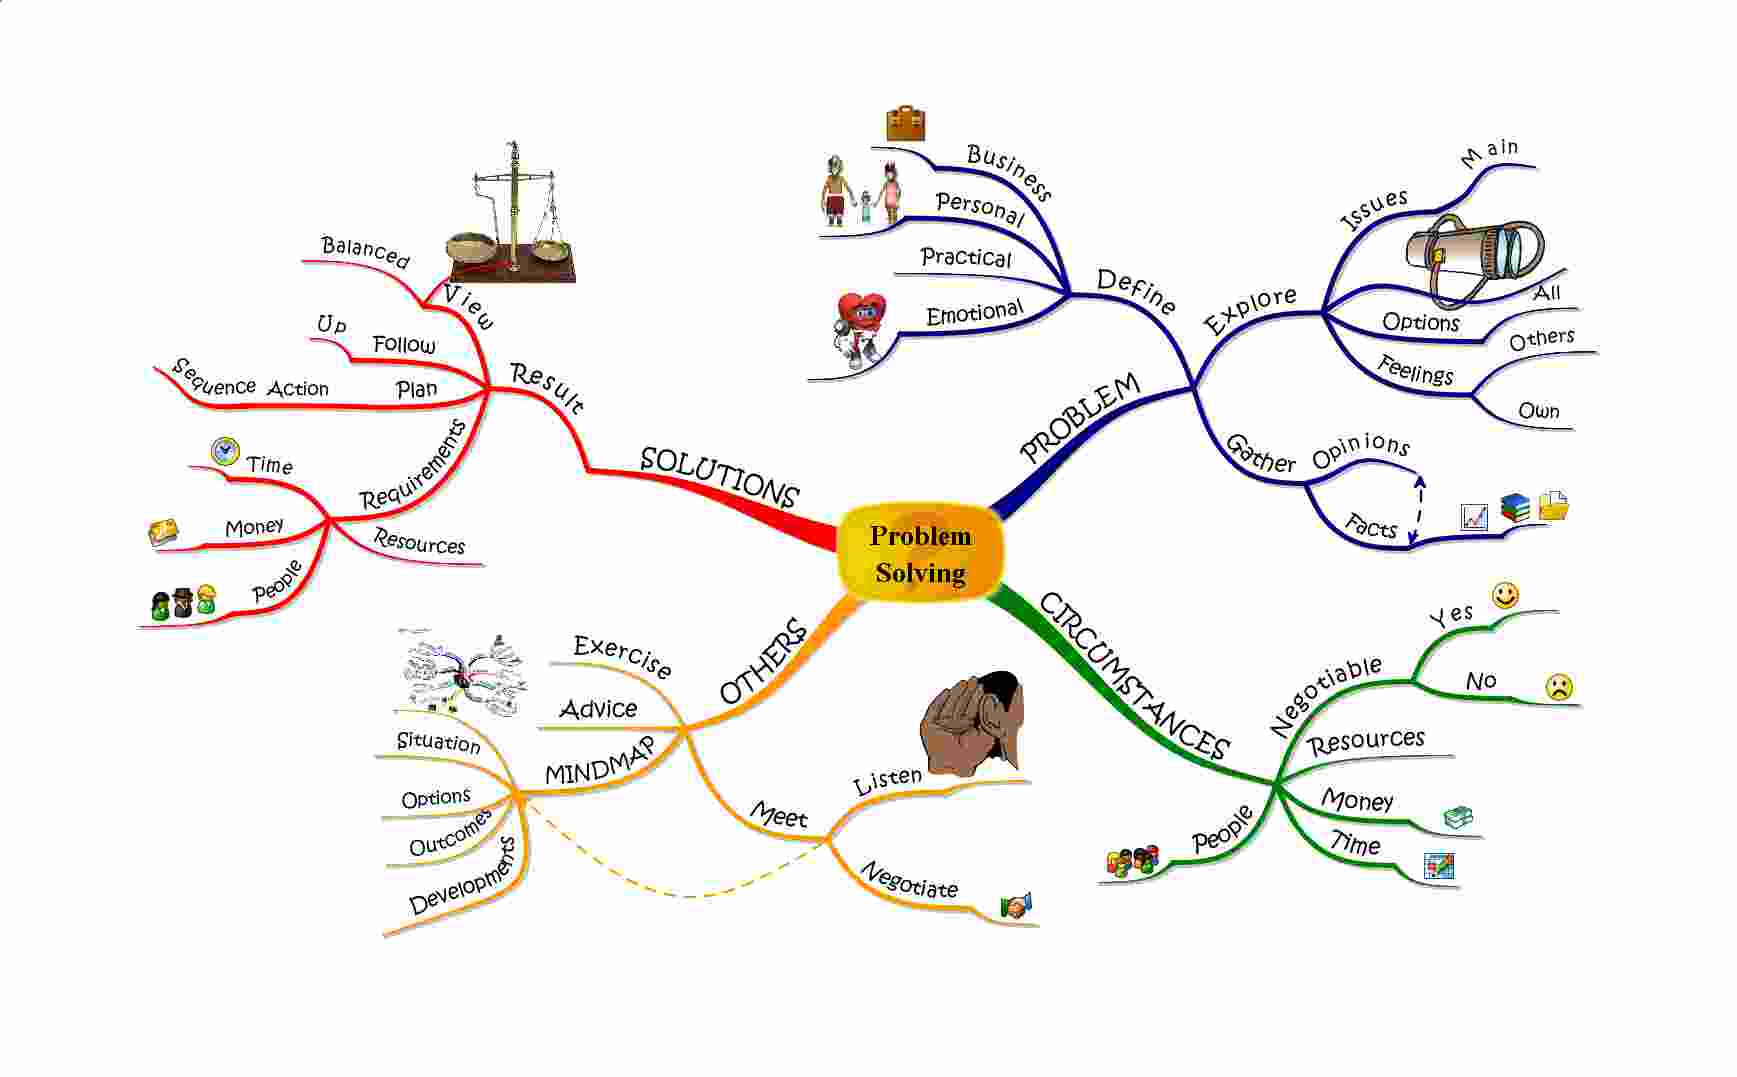 problem solving mindmaps mind mapping creative thinking problem solving tony buzan s mind mapping